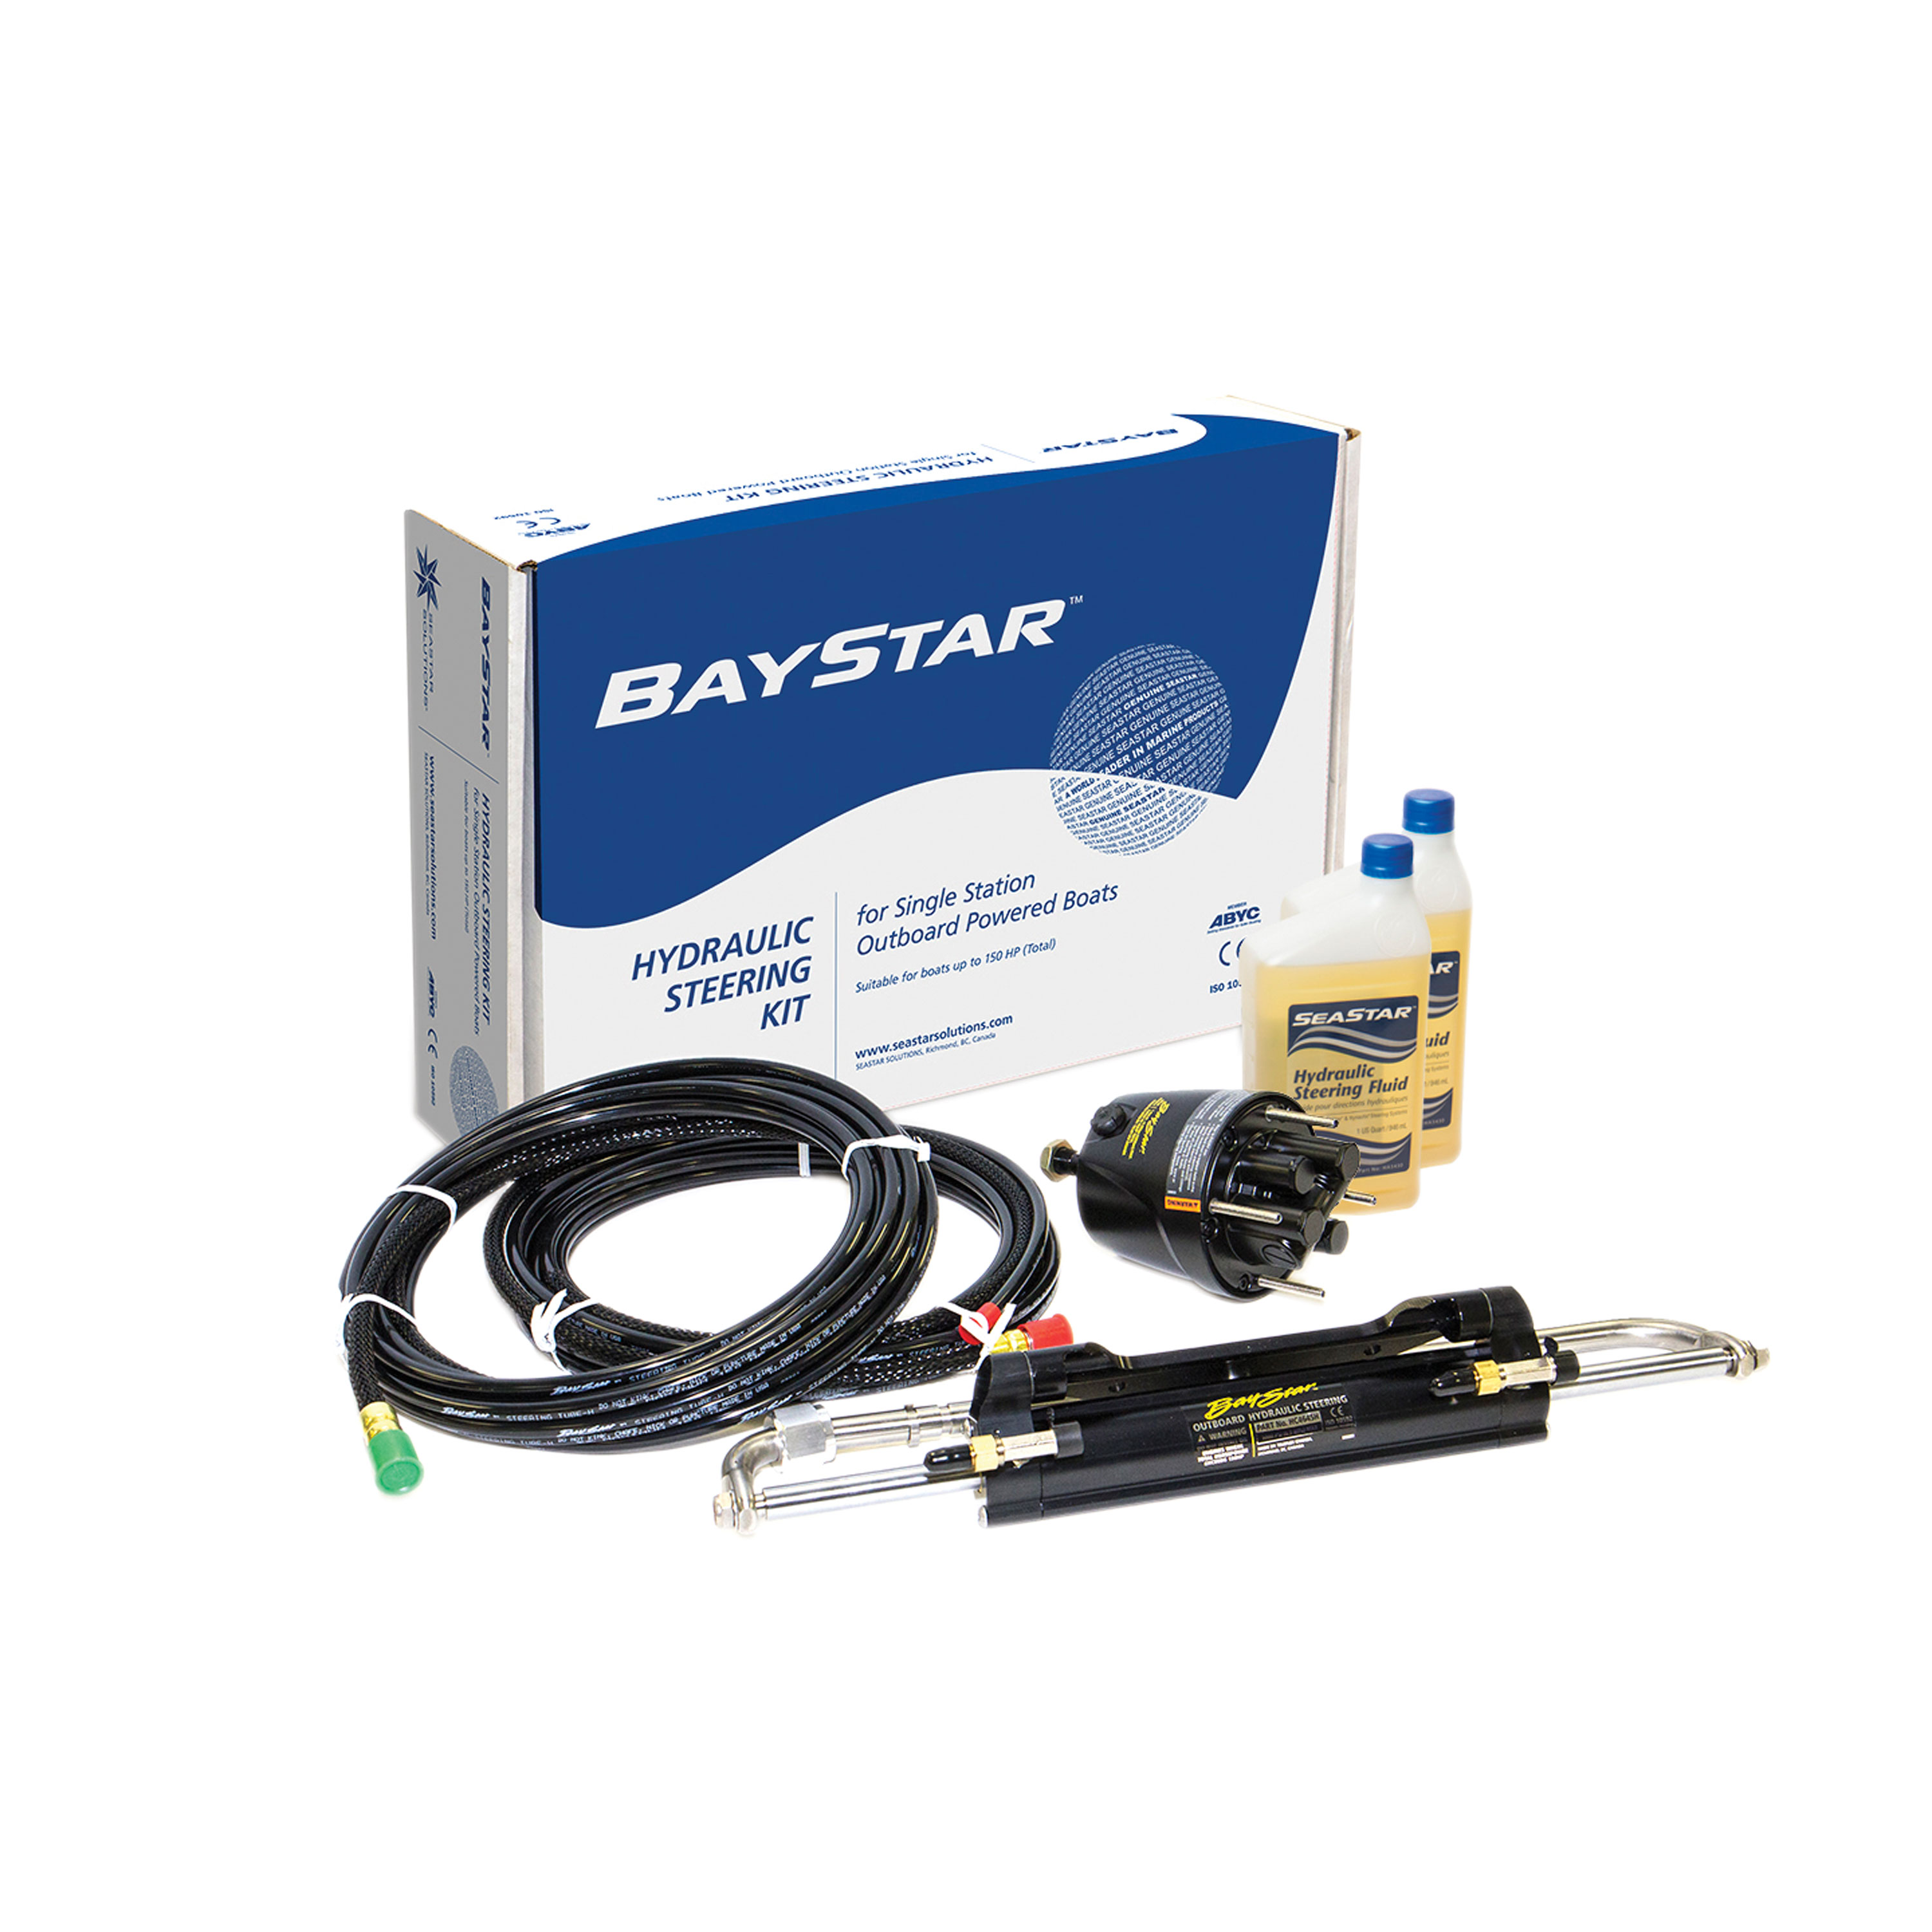 Sea Star Solutions HK4200A-3 Baystar Outboard Steering Kit